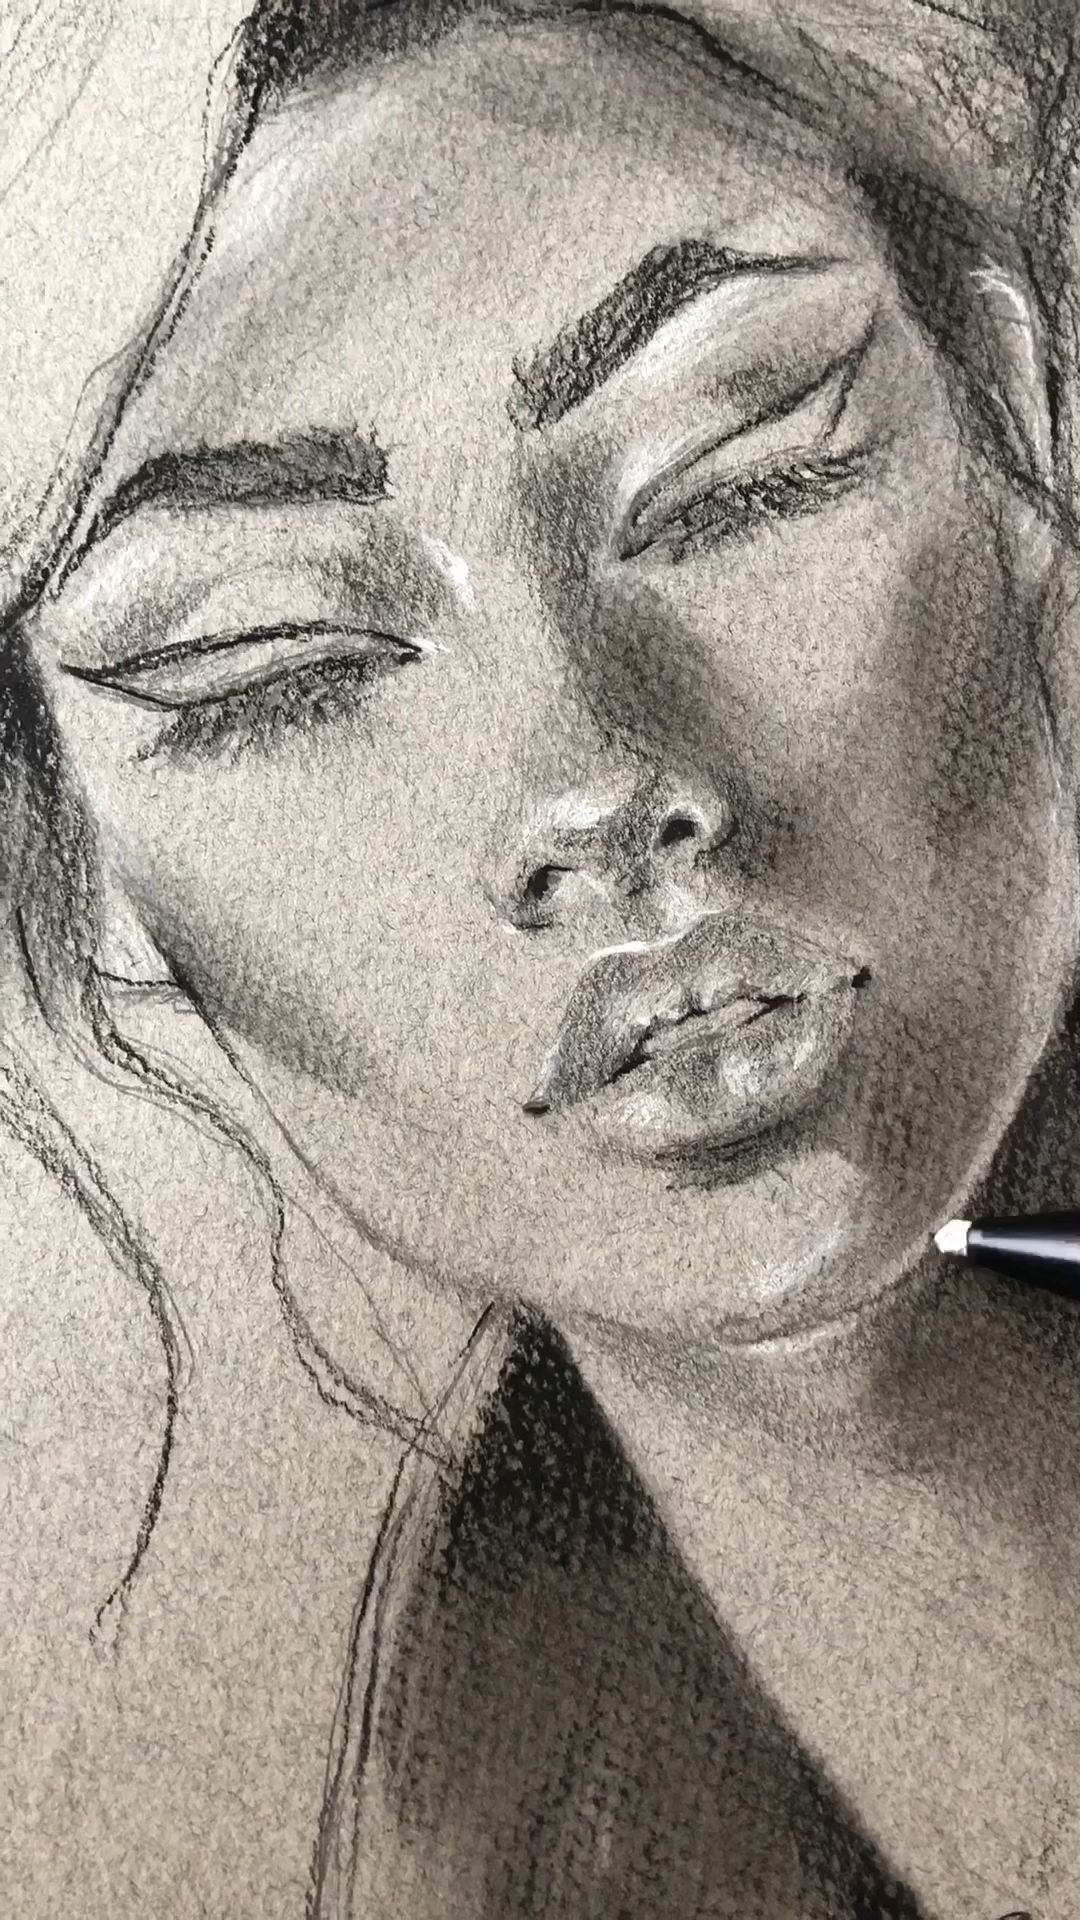 Creating highlights using an eraser and white charcoal pencil on pastel paper. #fitness inspiration...